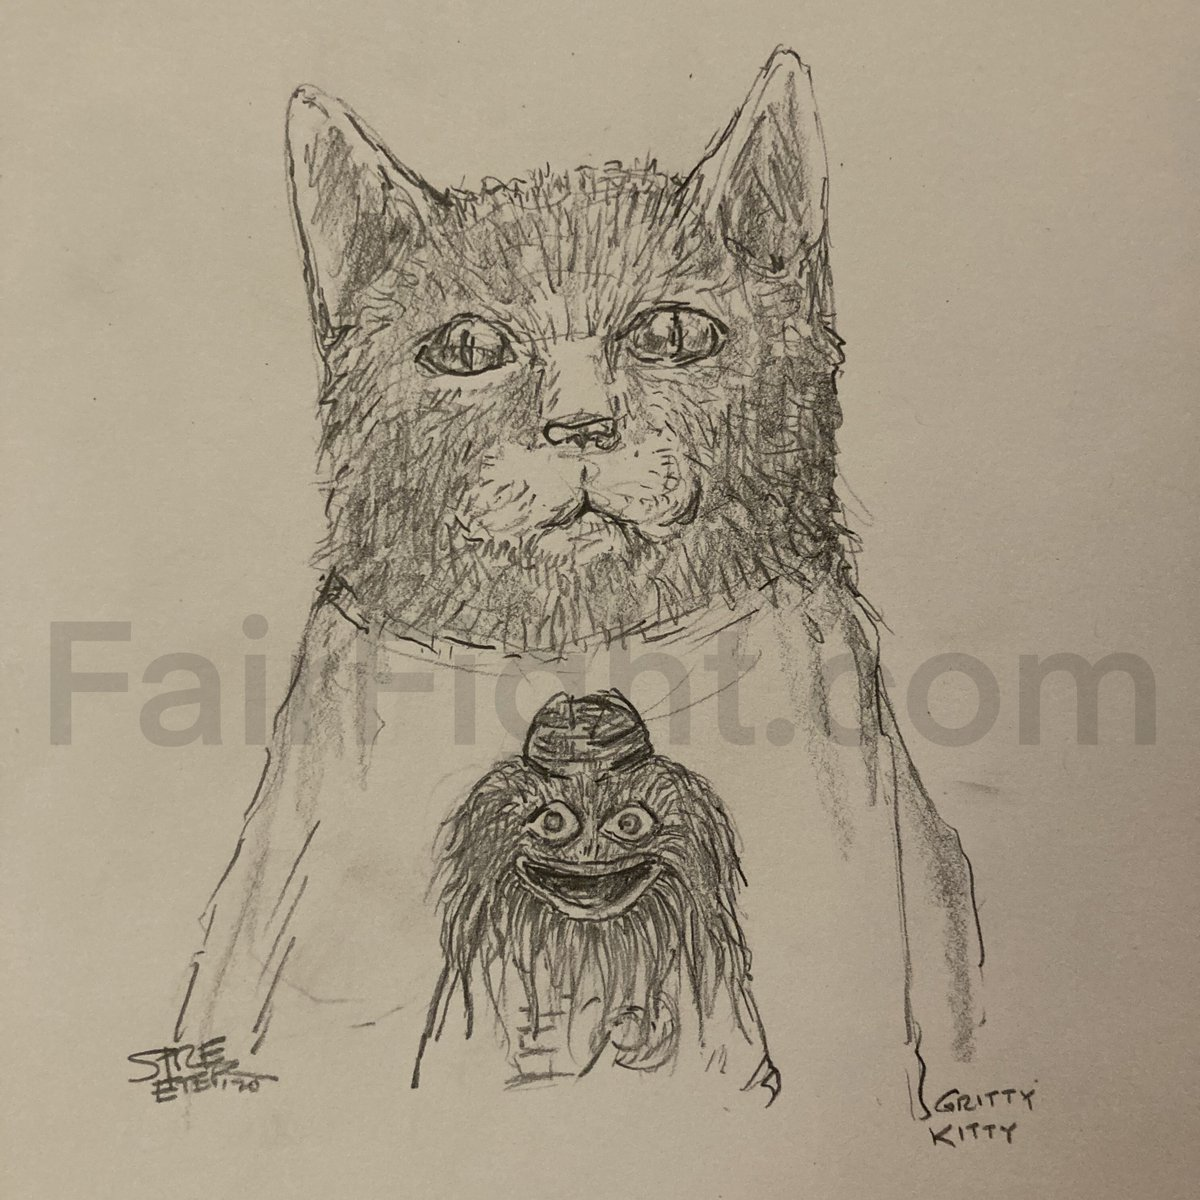 Reminder: If you donate to  and DM to let me know, I'll send you a high-res digital copy of Gritty Kitty here, of @quarantinebook fame  #art #gritty #kitty #fairfight #georgia #senate